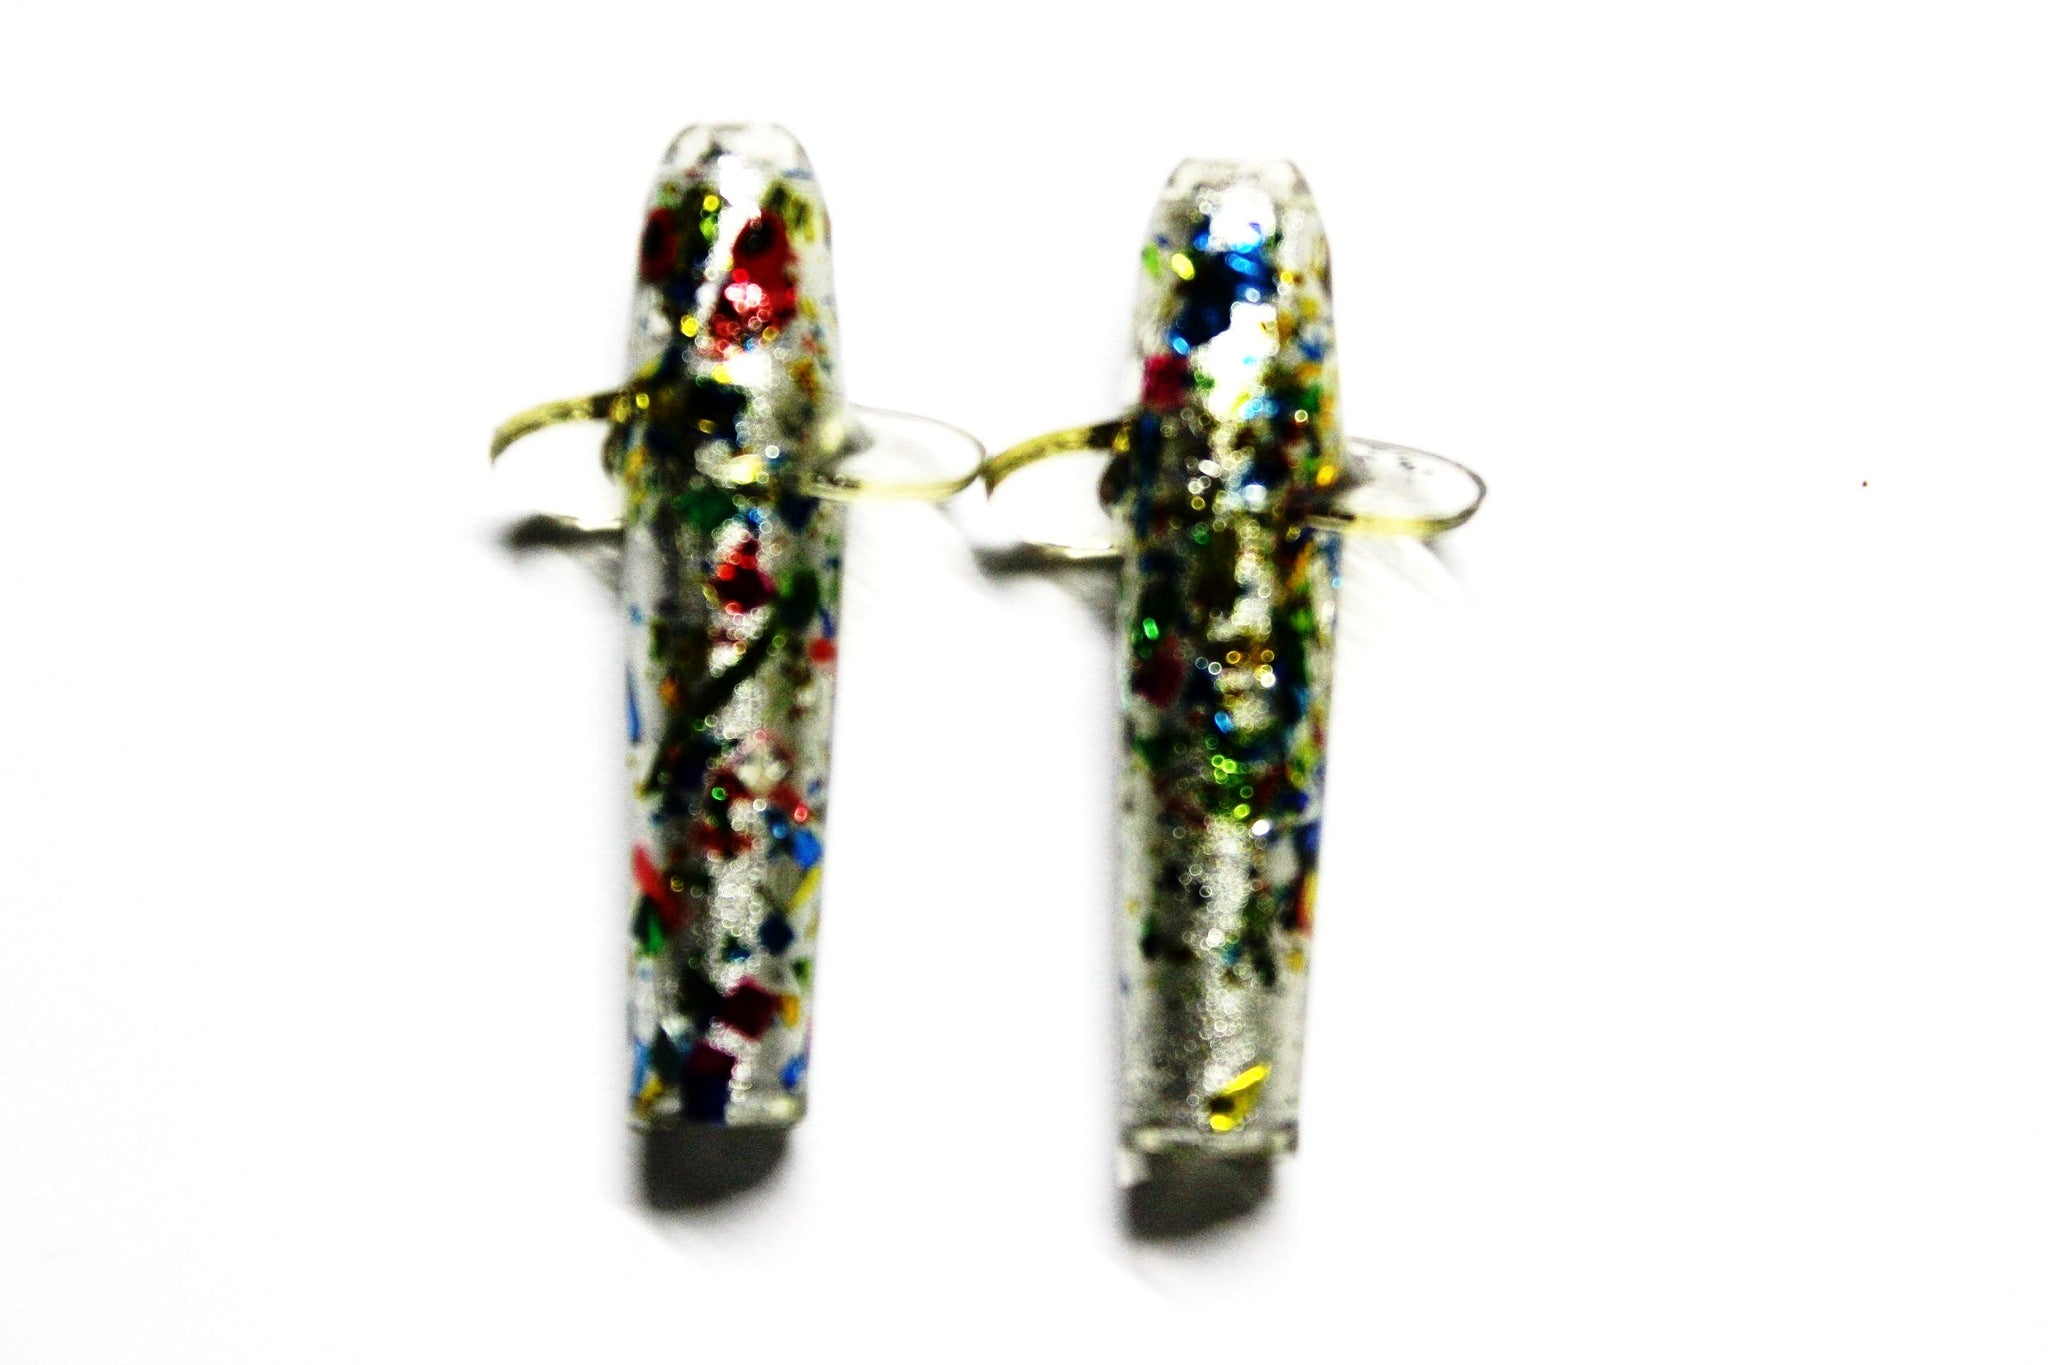 Tillins Fishing 'Ashley' Spinners 1 1/2